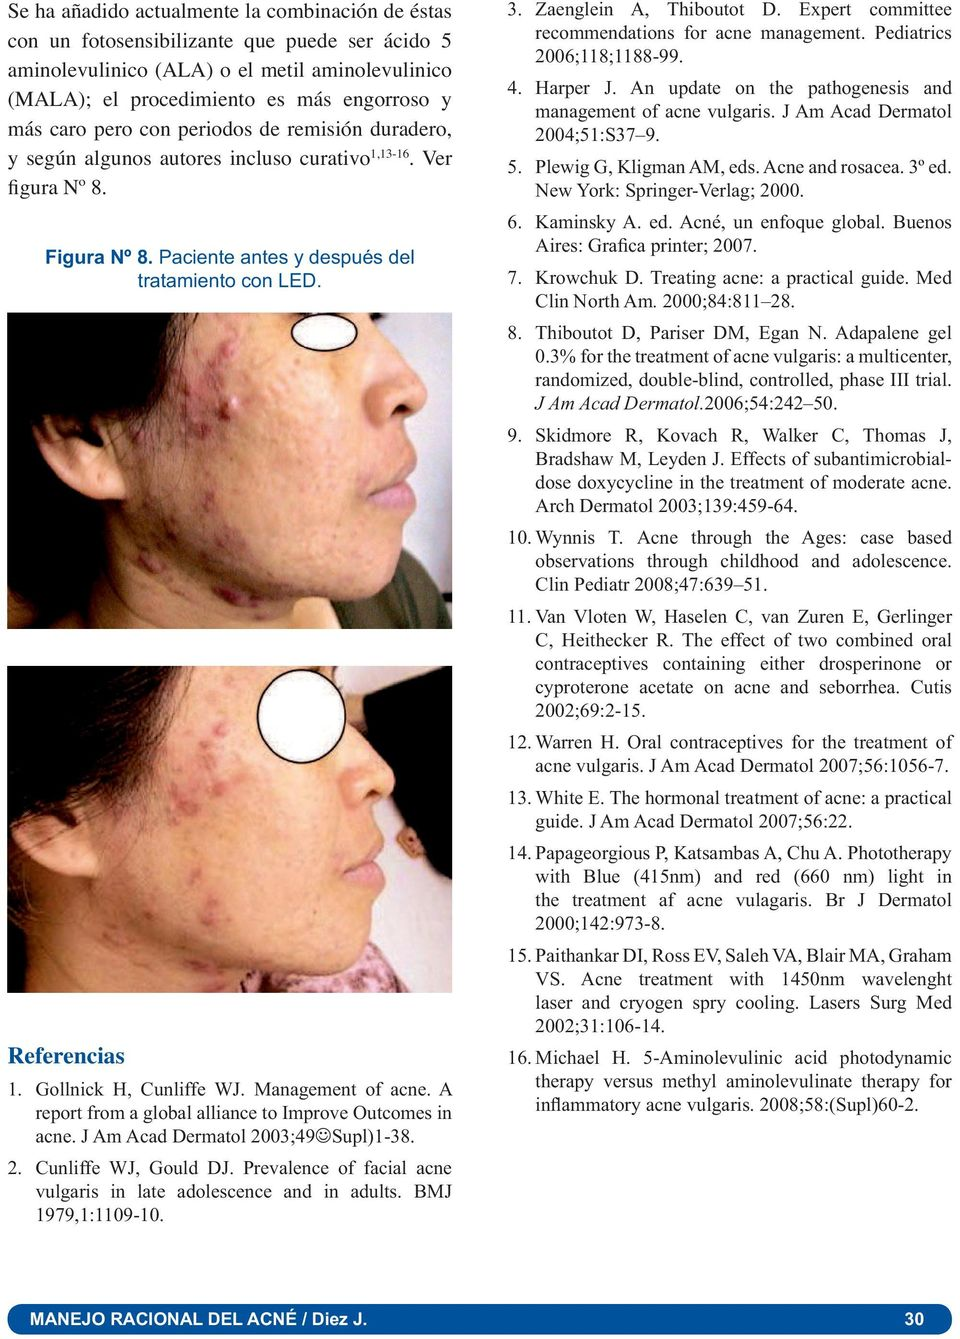 Gollnick H, Cunliffe WJ. Management of acne. A report from a global alliance to Improve Outcomes in acne. J Am Acad Dermatol 2003;49 Supl)1-38. 2. Cunliffe WJ, Gould DJ.